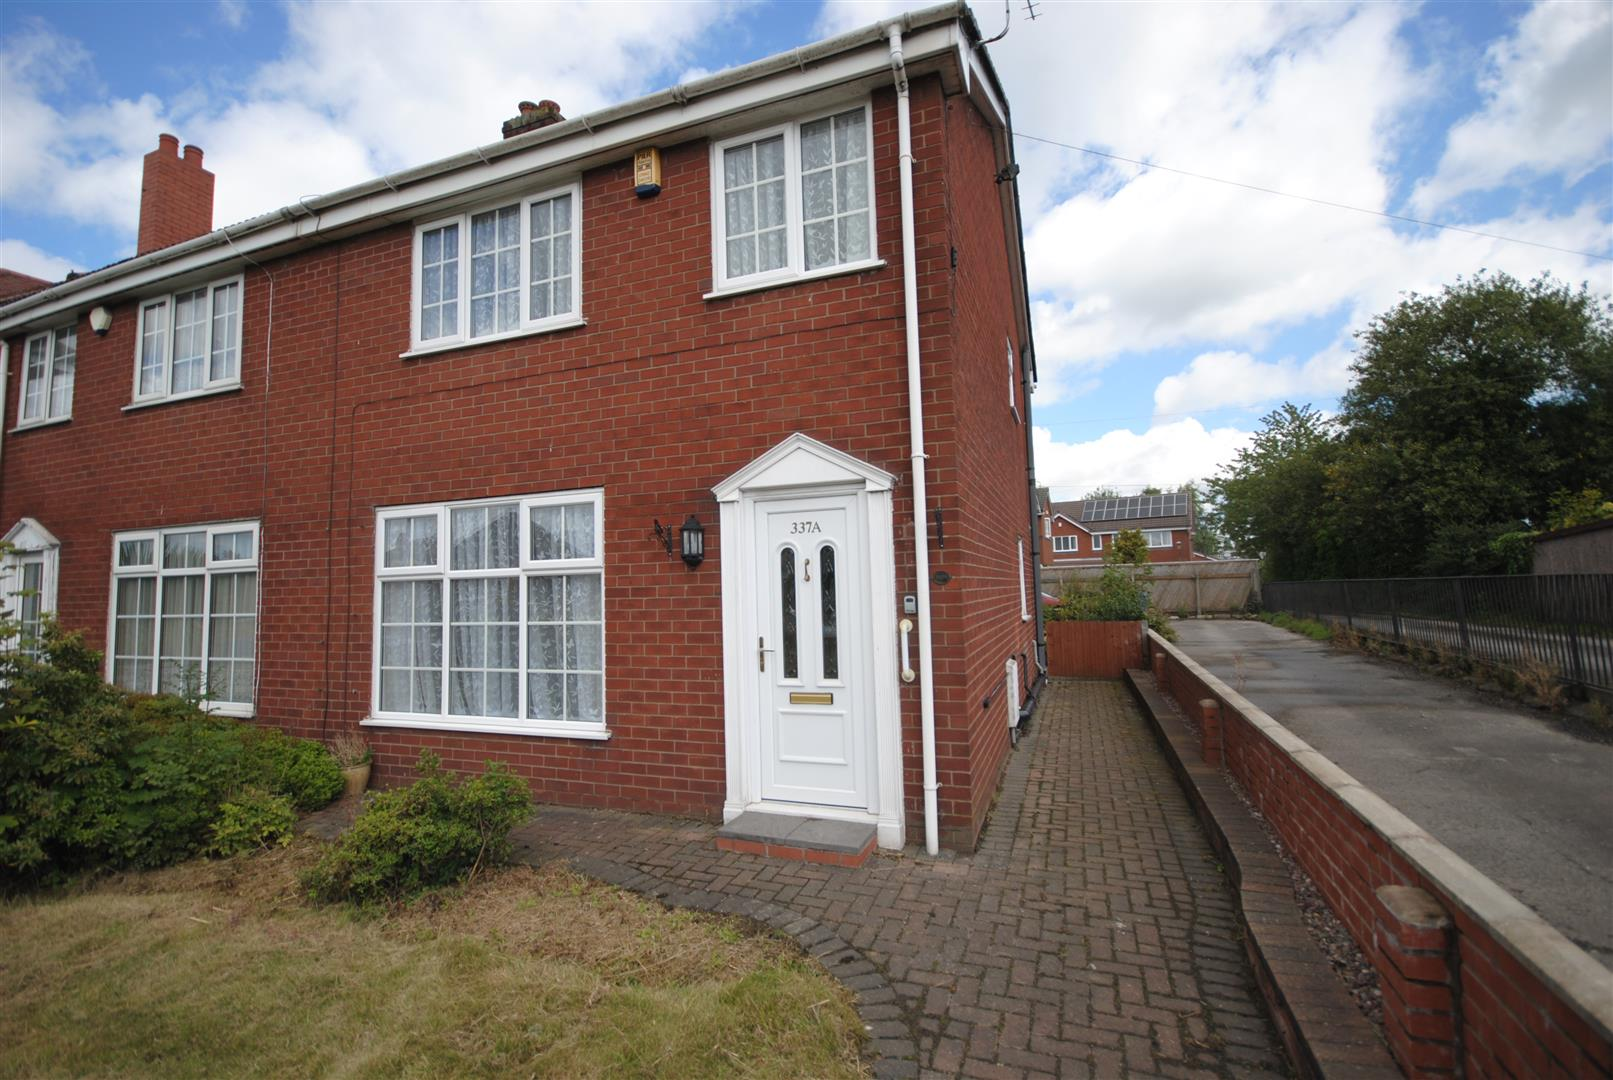 3 Bedrooms Semi Detached House for sale in Atherton Road, Hindley-Green, Wigan